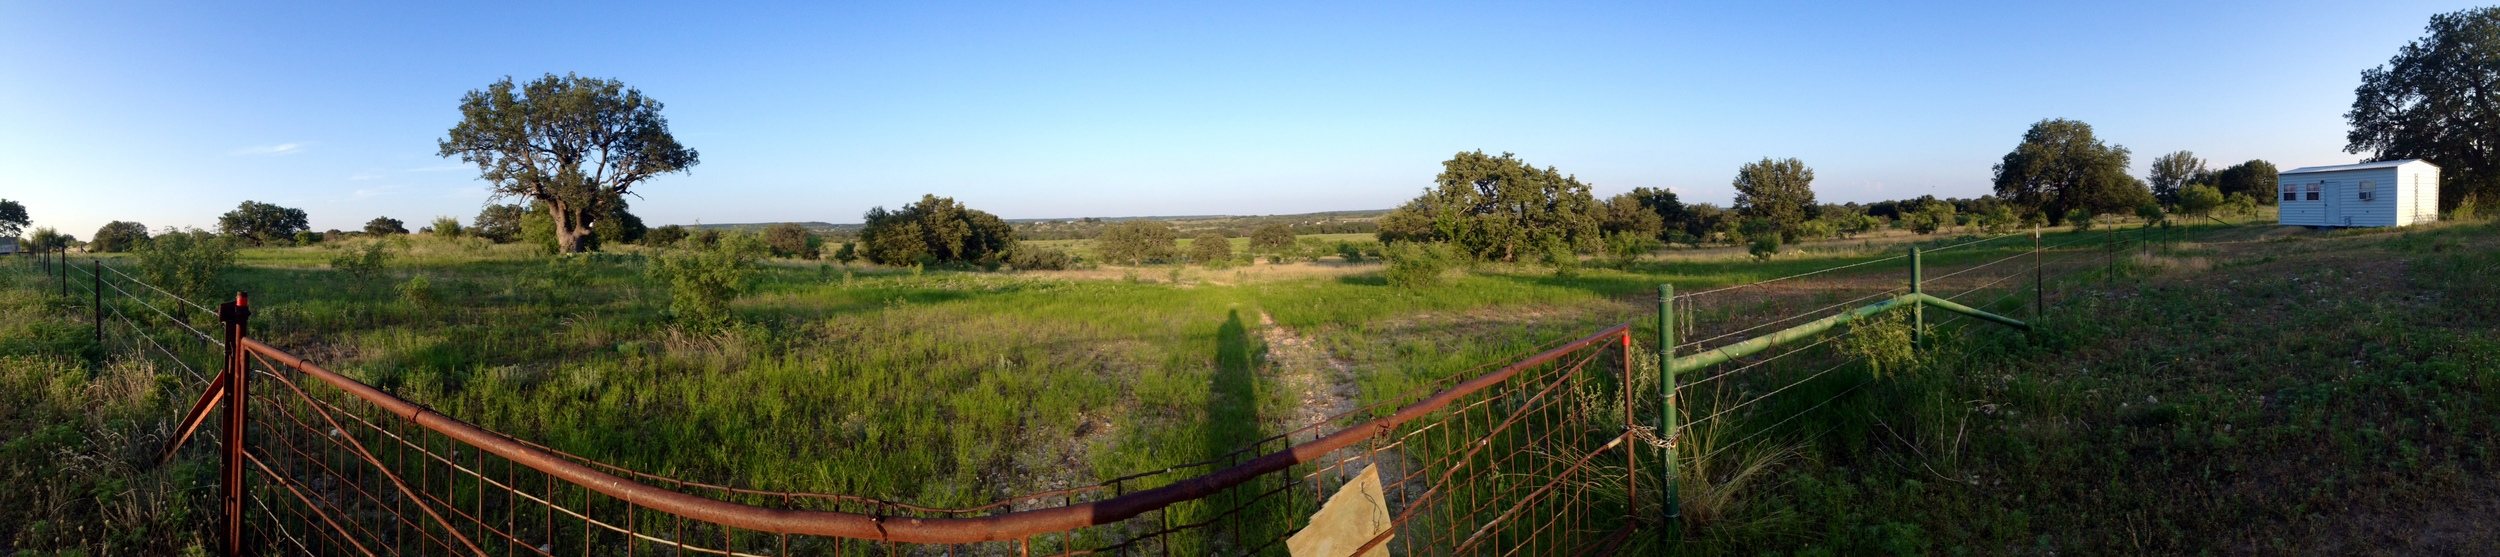 View from the top of the hill overlooking the eastern portion of the ranch